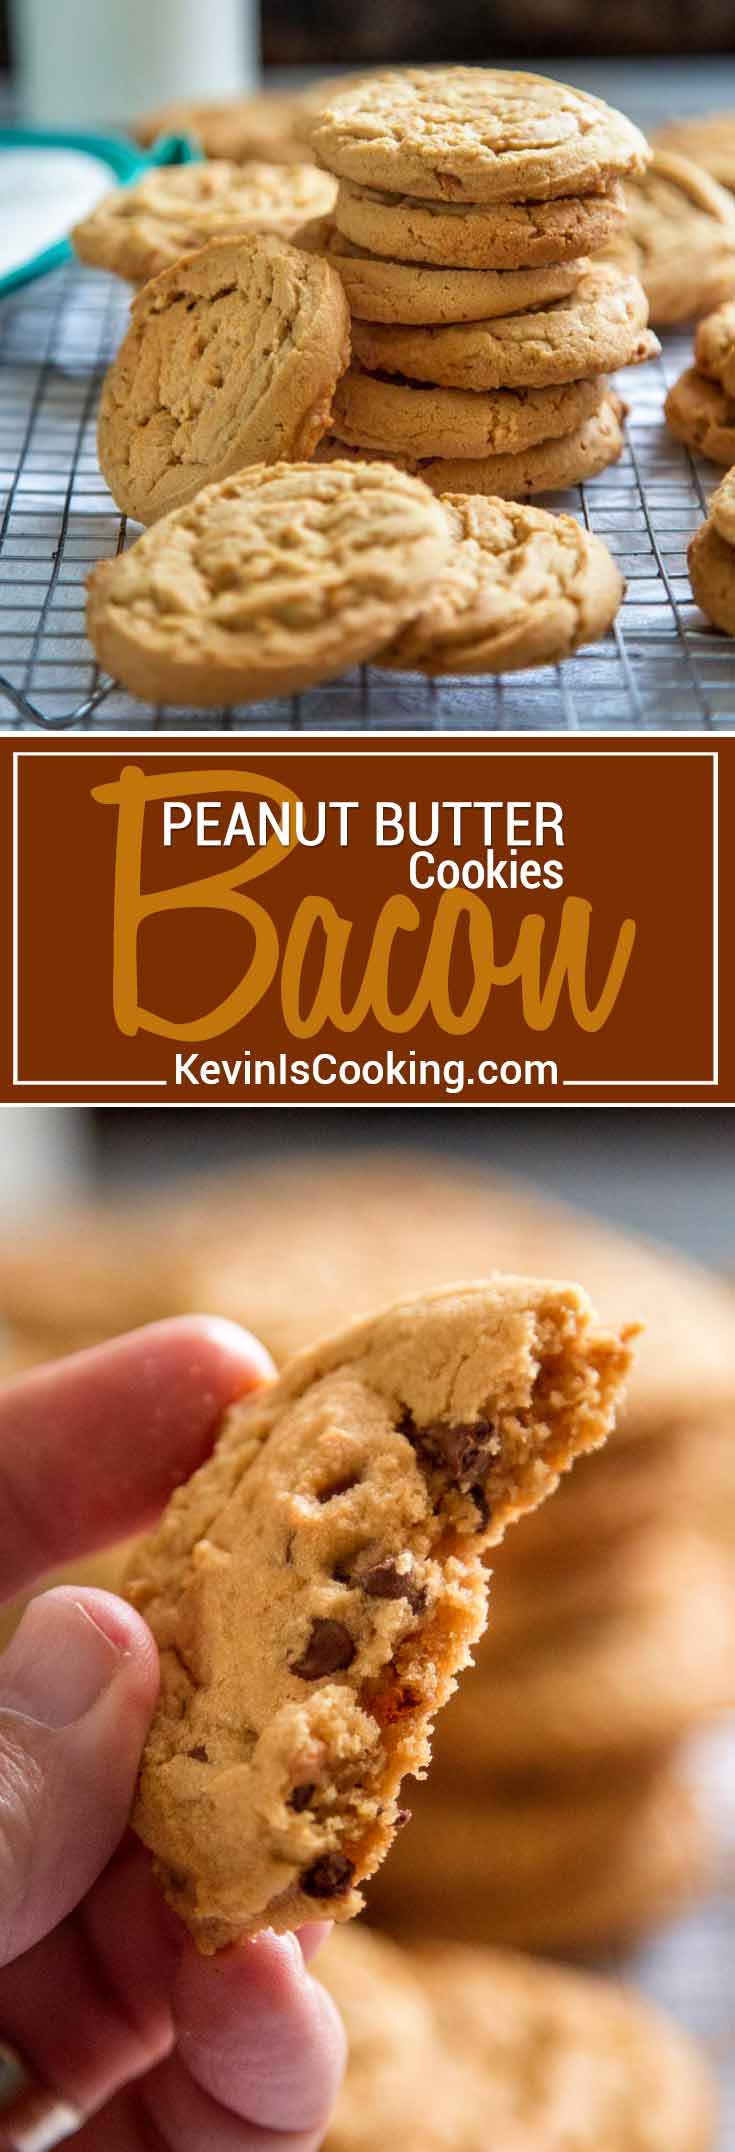 These amazing Peanut Butter Bacon Cookies are beyond tender and rich in mellow, subtle flavor. They get a smokey undertone using bacon fat instead of butter. Yes, bacon fat. So good!